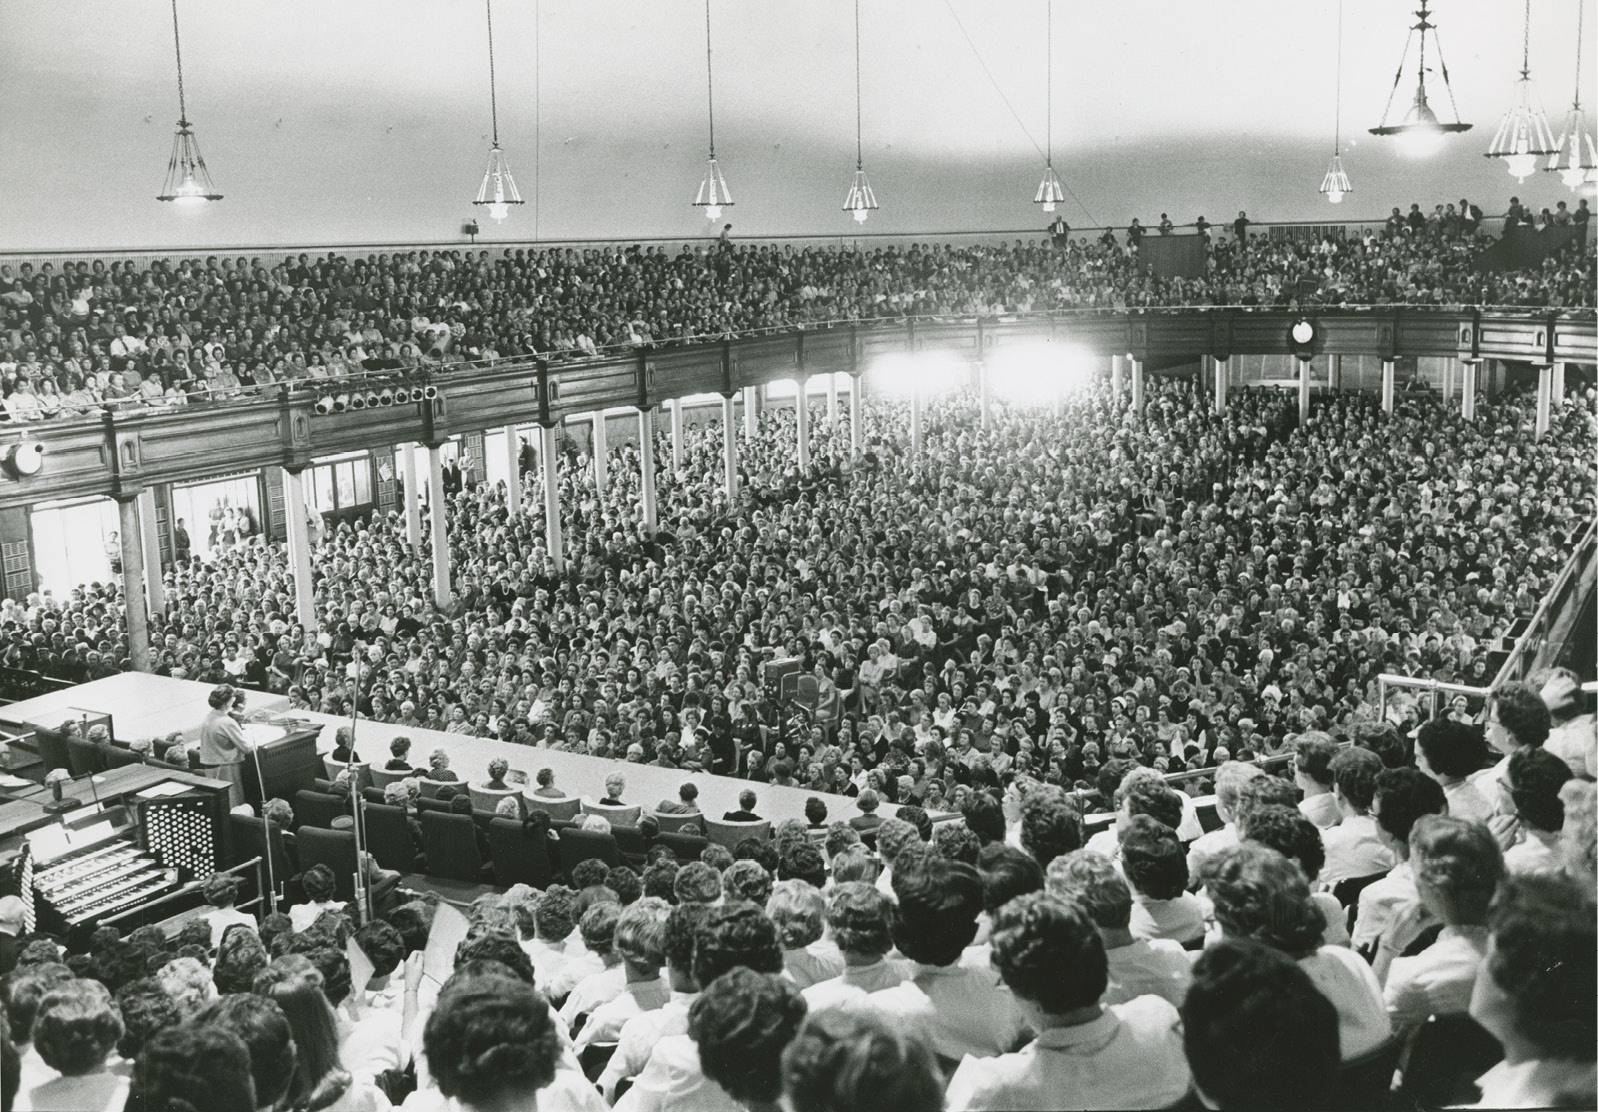 Relief Society General Conference in 1962. The first Relief Society general conference was held in 1889. This photograph of the Salt Lake Tabernacle shows a large crowd at one of the sessions of the October 1962 conference, at which Sister Louise W. Madsen spoke. Photograph by Ross Welser.